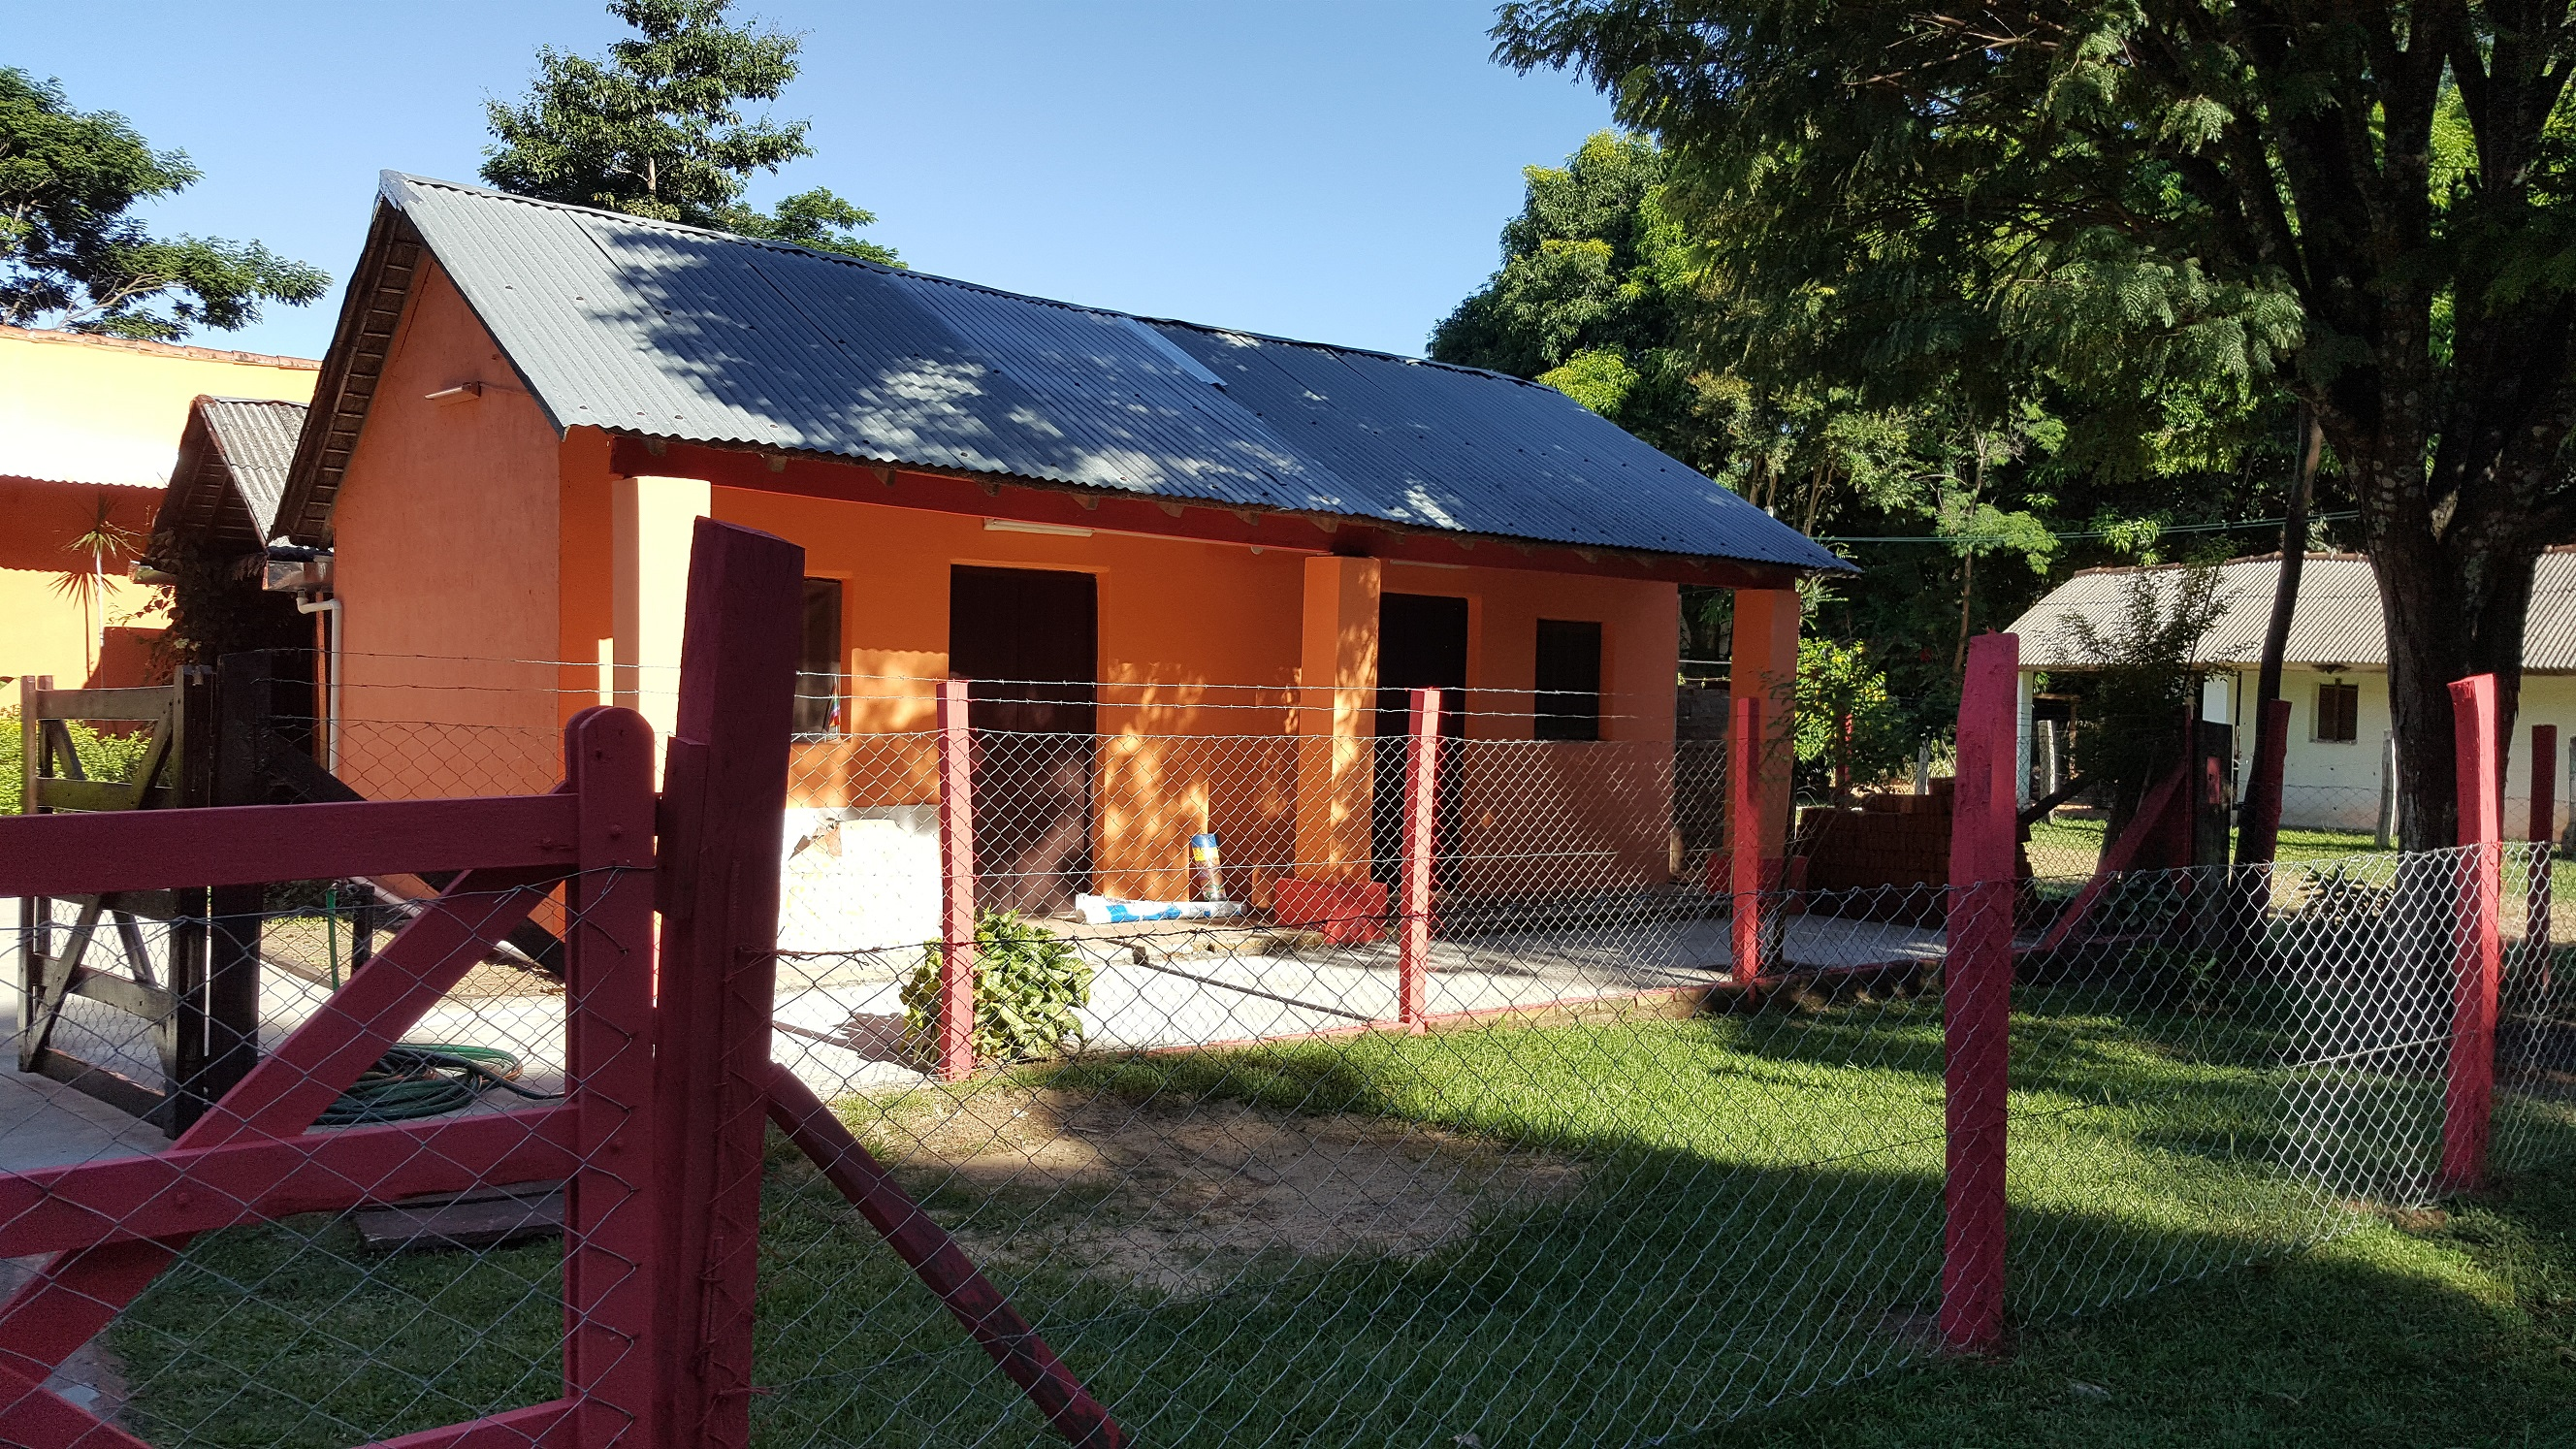 character property for sale villarica guaira paraguay